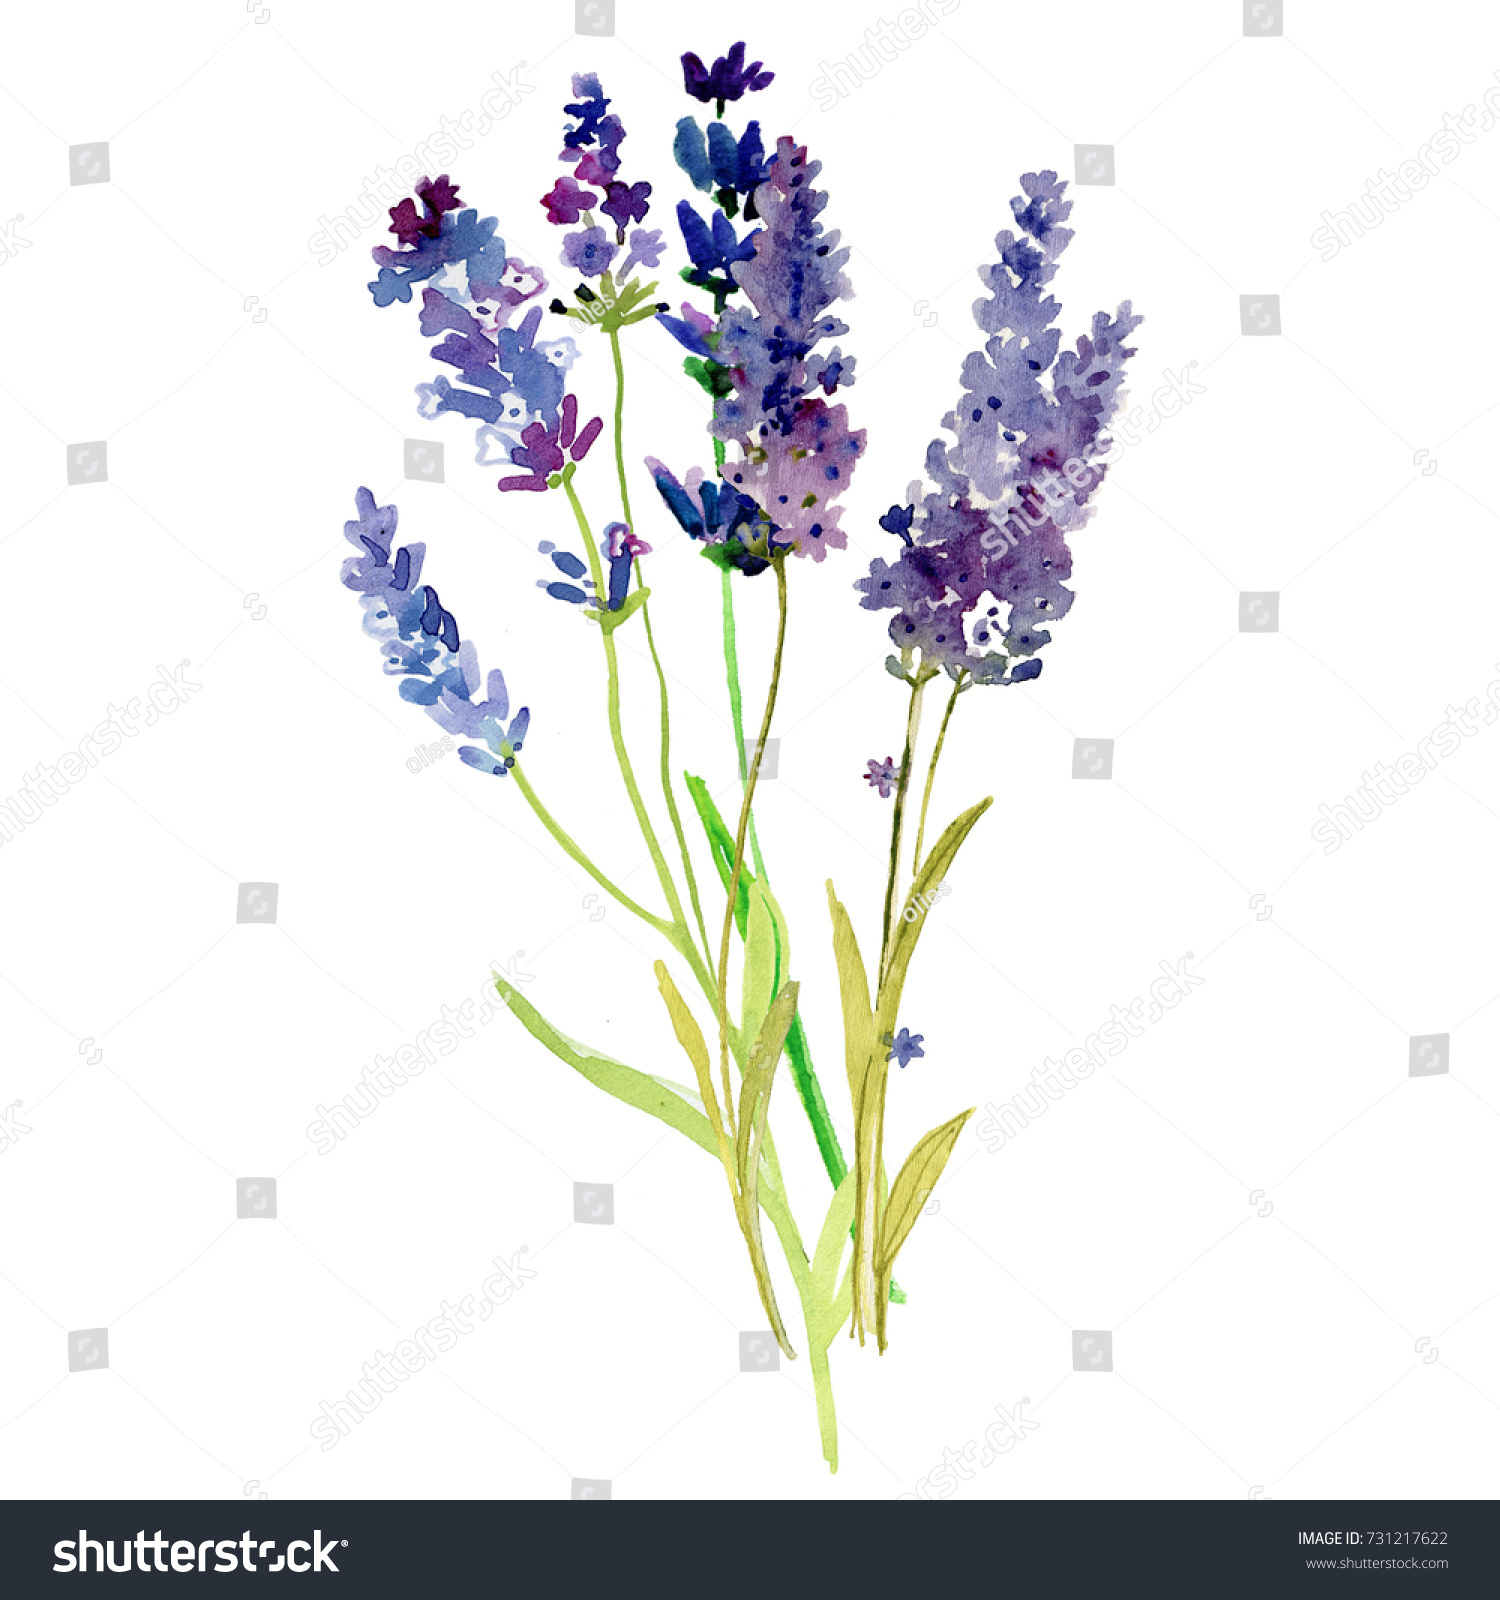 Ilustracoes Stock Imagens E Vetores De Isolated Provence Lavender Flowers Watercolor Floral 731217622